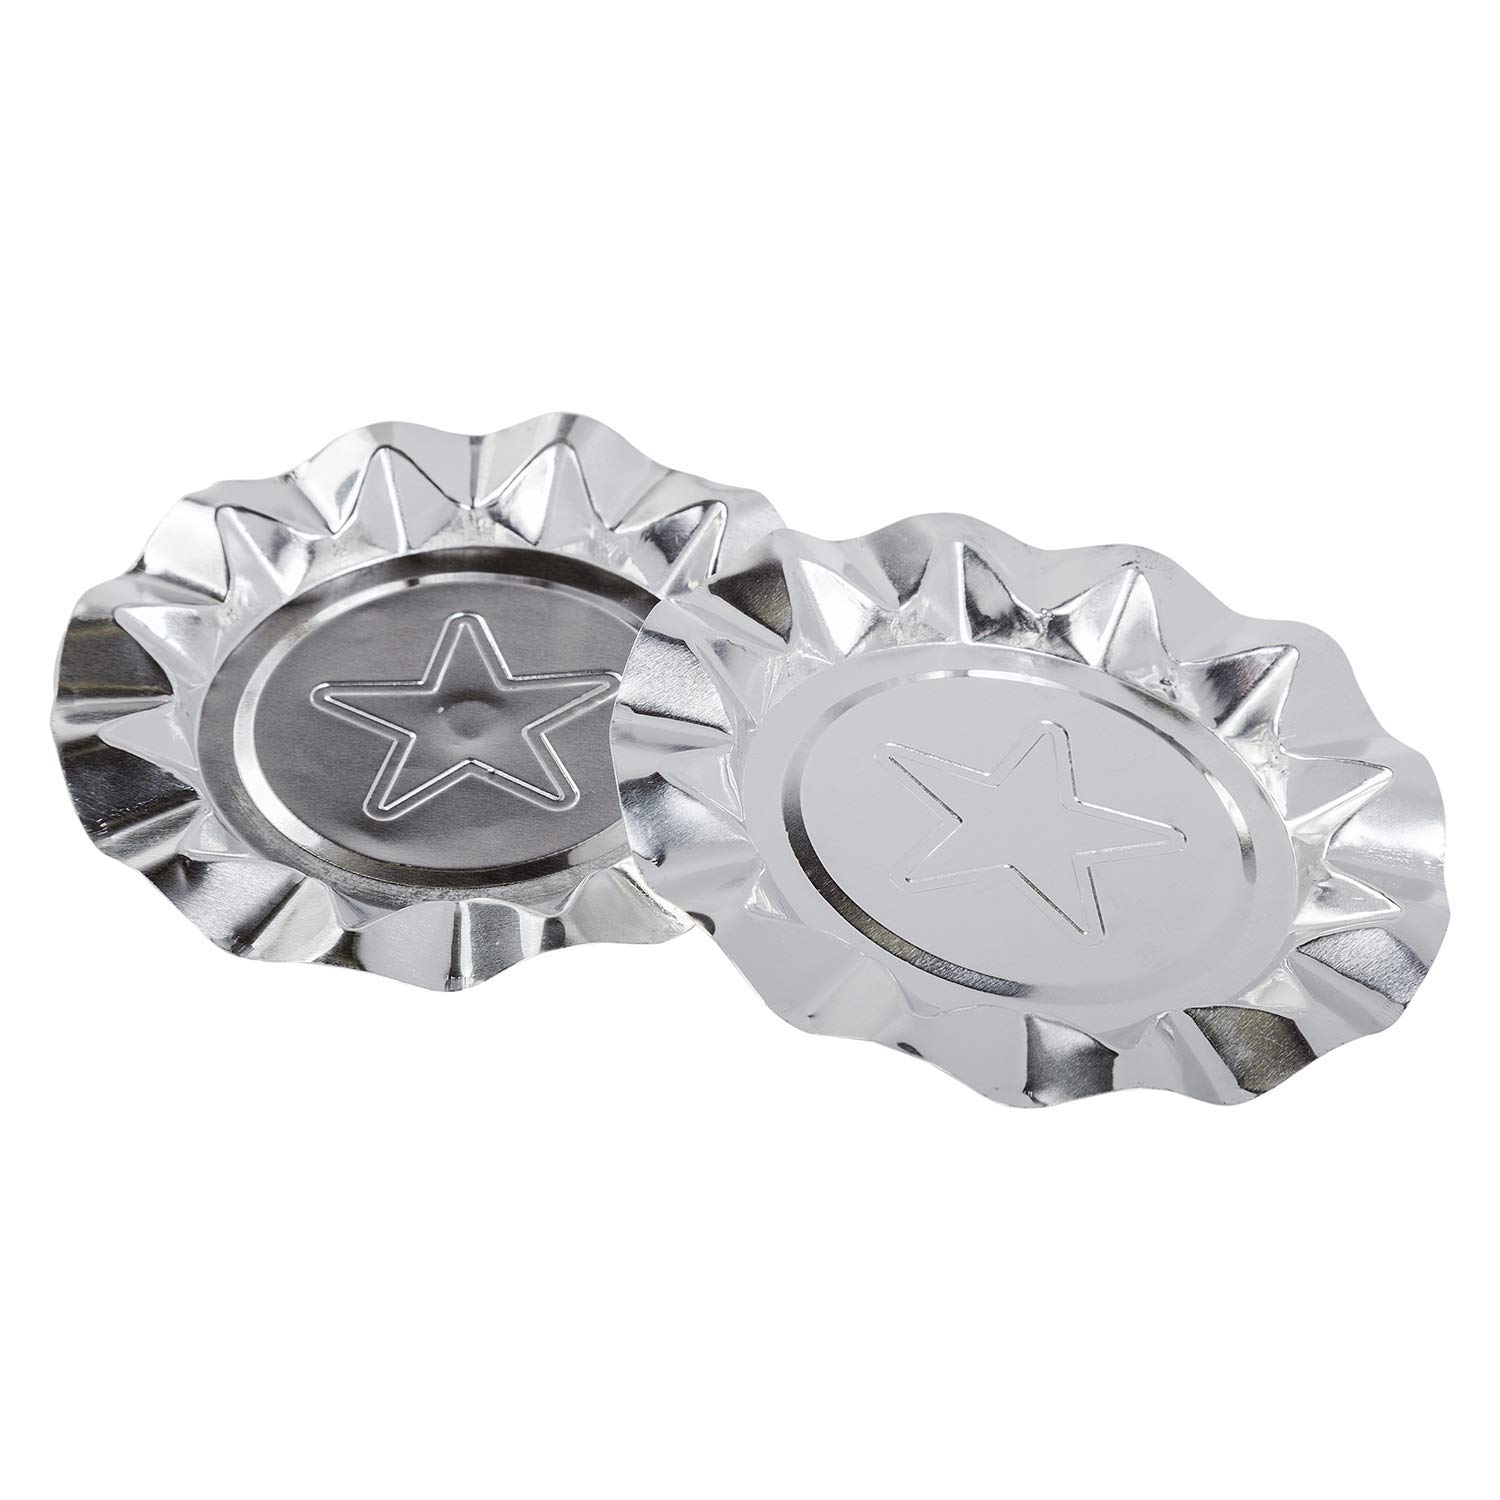 Royal Silver Star Aluminum Ashtrays, Package of 250